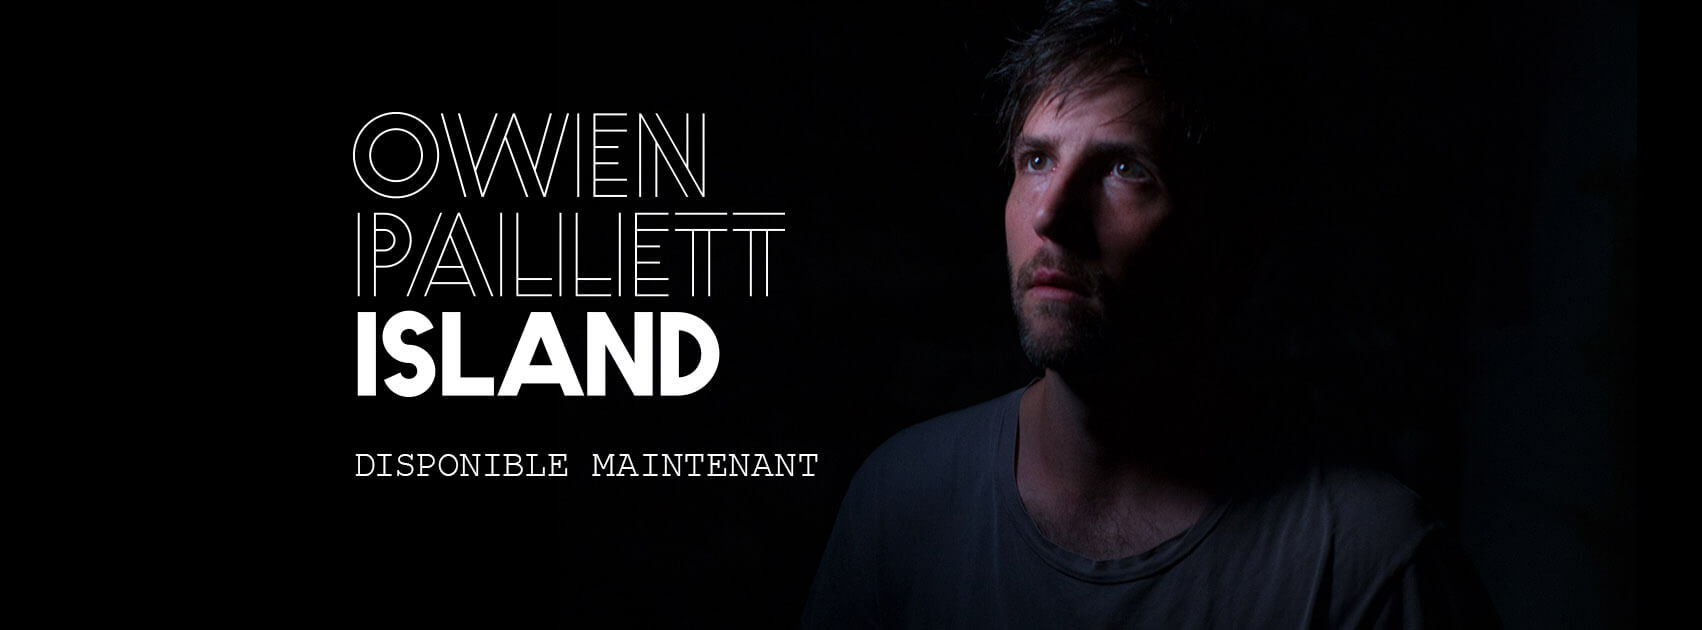 OwenPallett-SCRWebsite-FR